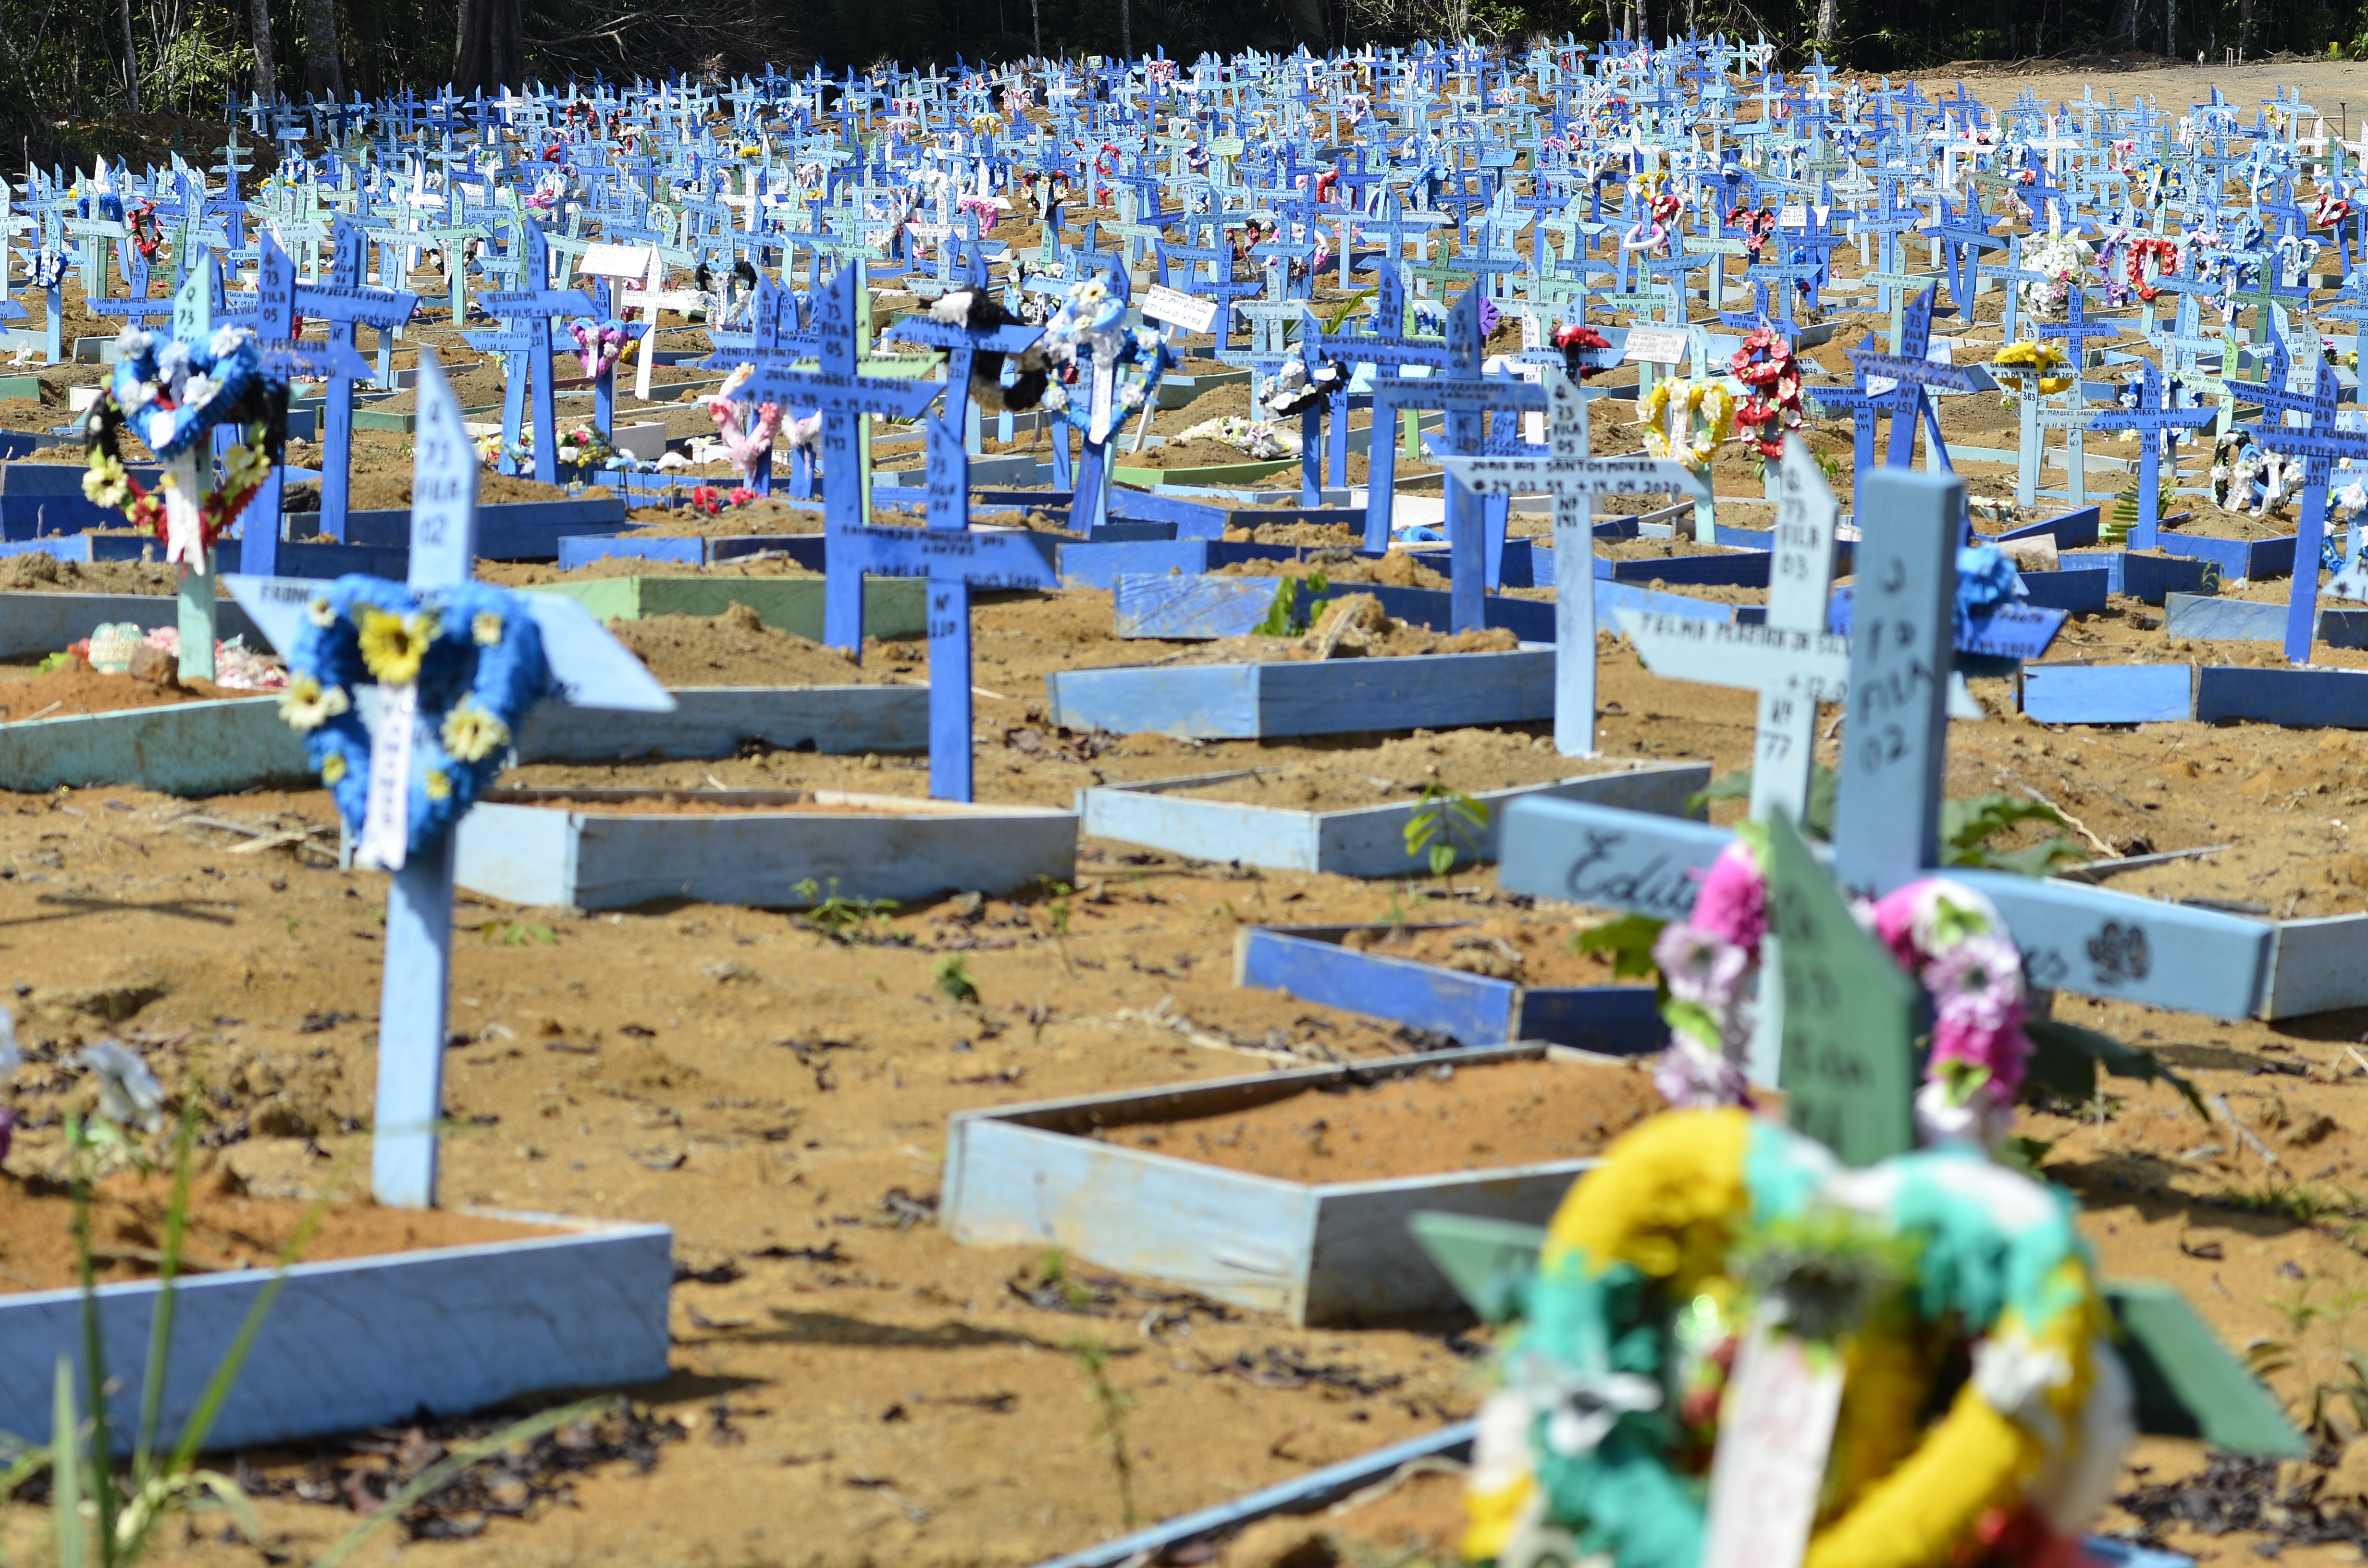 AMAZONAS, BRAZIL - OCTOBER 03: A view of Taruman Park Cemetery used to bury coronavirus (Covid-19) victims is seen as death toll rises due to the pandemic in Manaus, Amazonas, Brazil on October 03, 2020. (Photo by Junio Matos/Anadolu Agency via Getty Images)